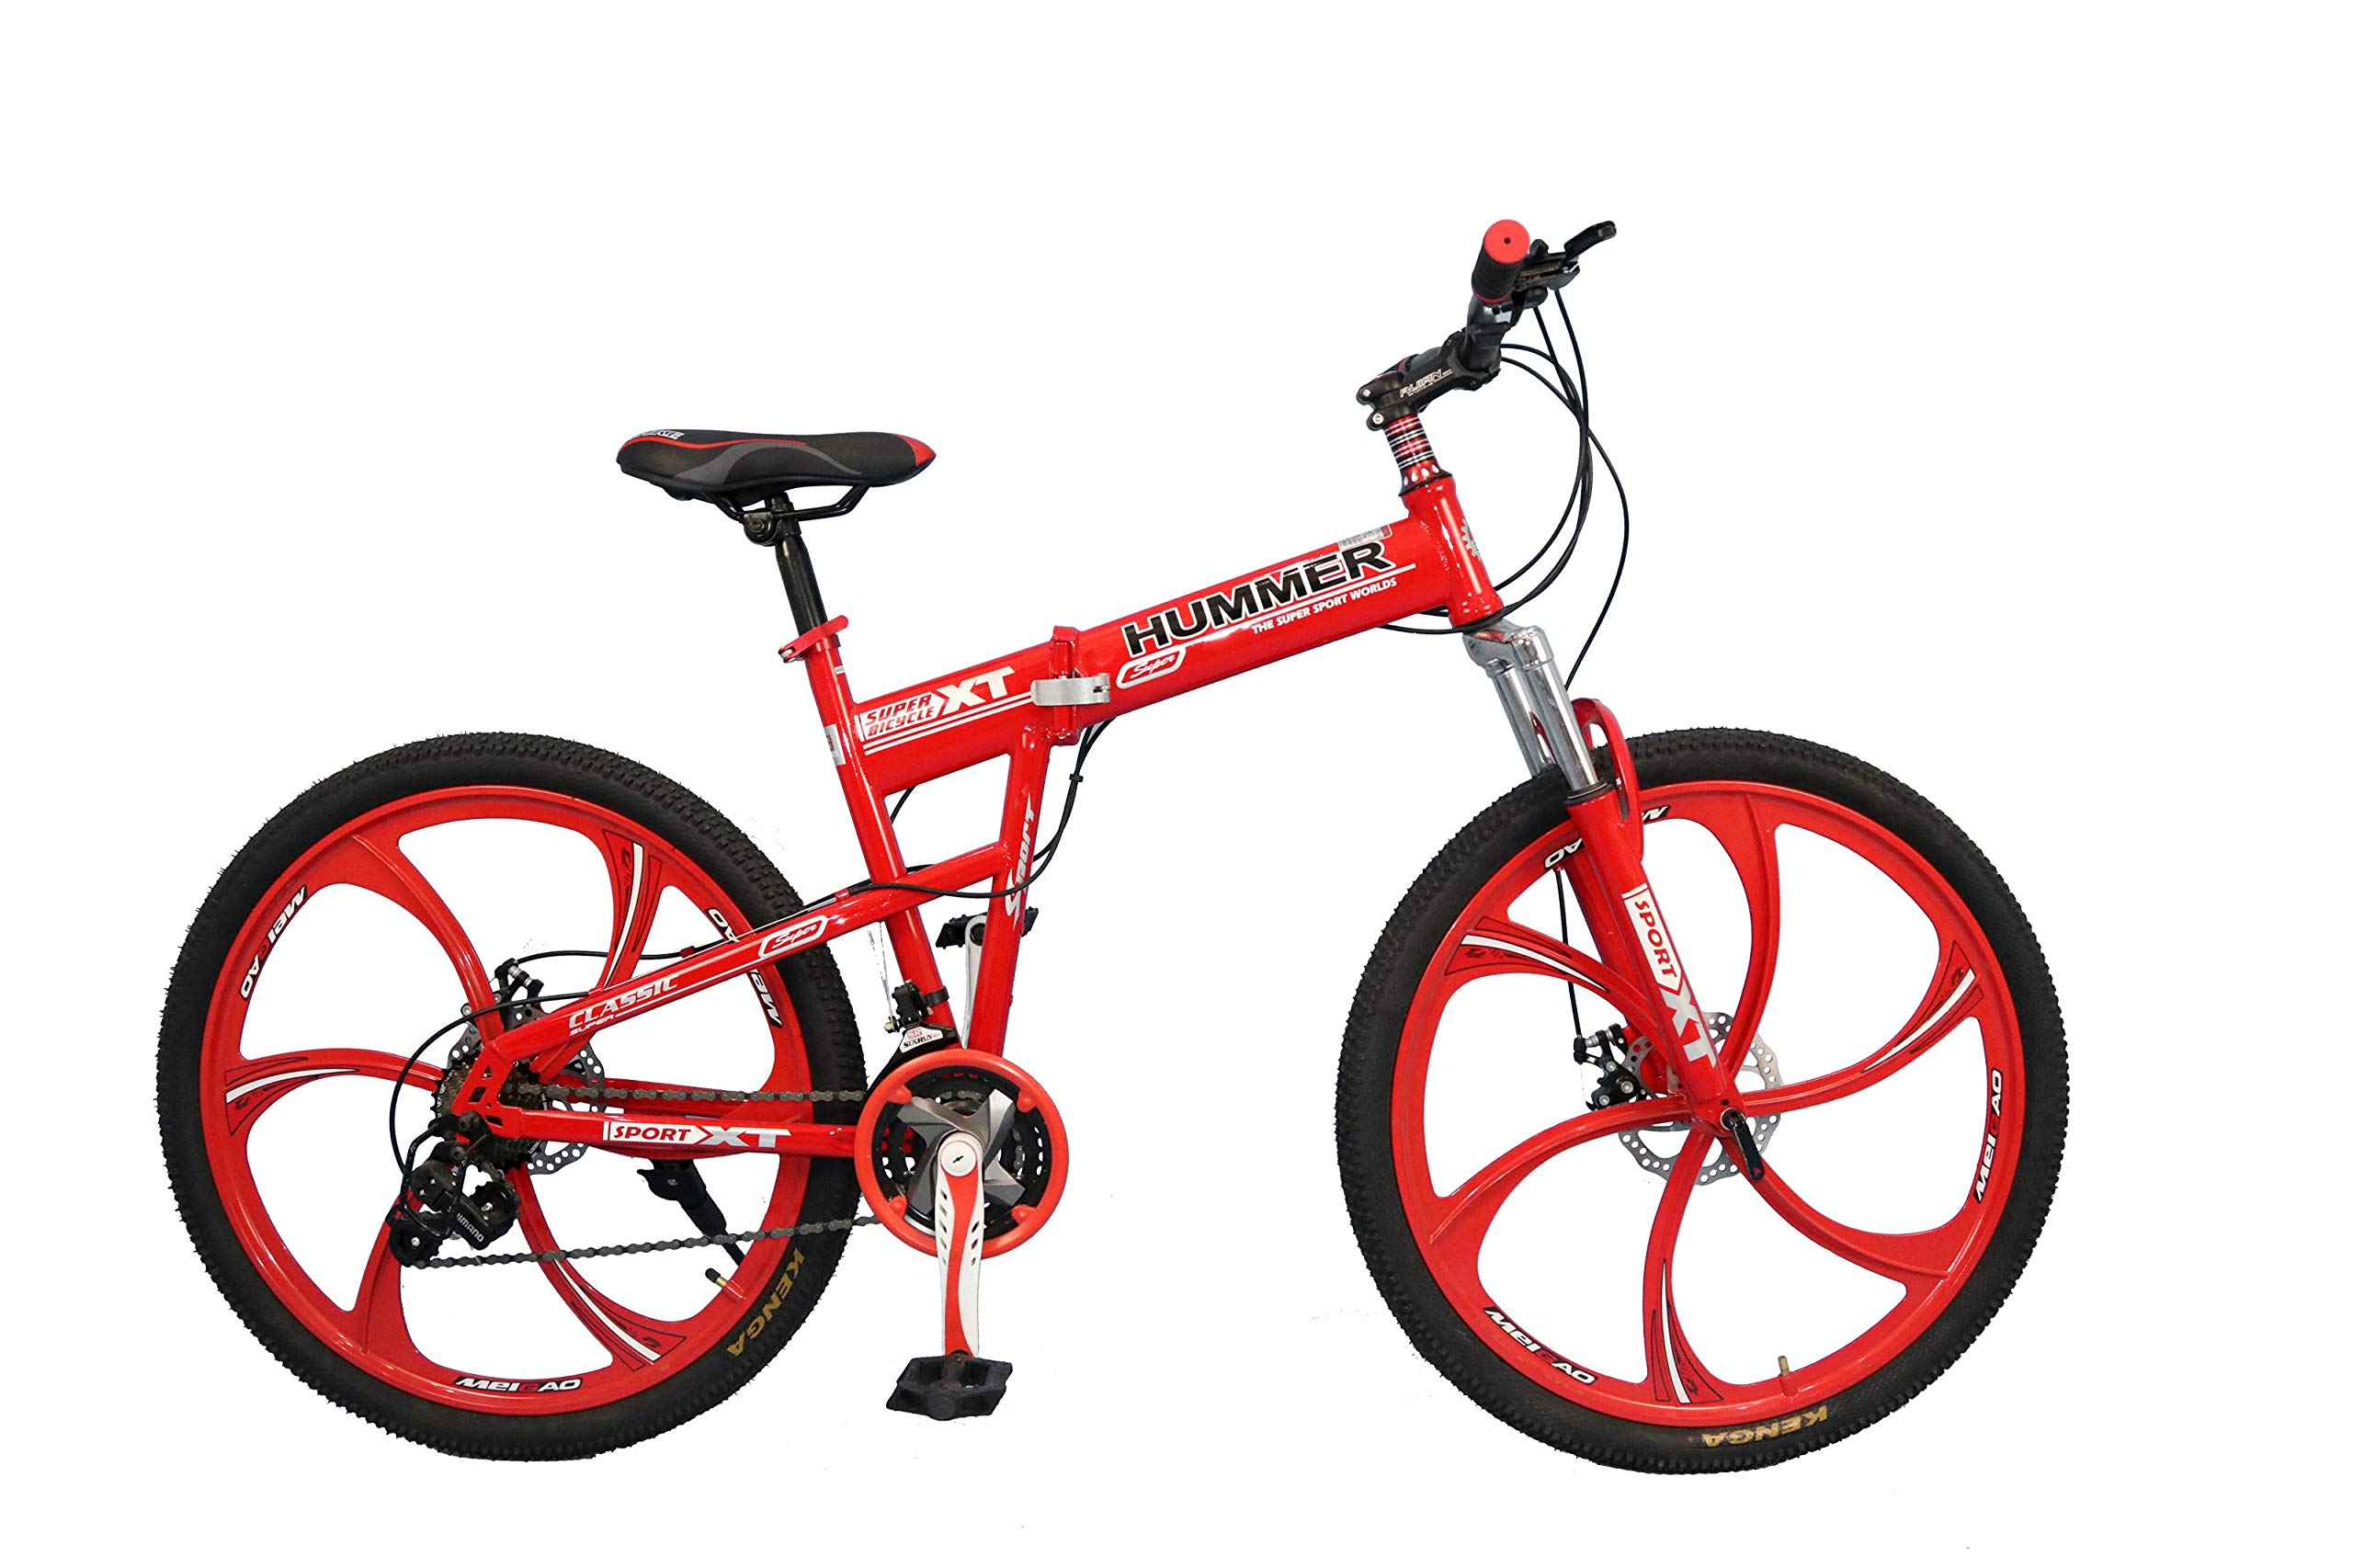 Hummer Mountain Bike 12 inch 12 Speed Foldable Bicycle Price ...   hummer folding bikes